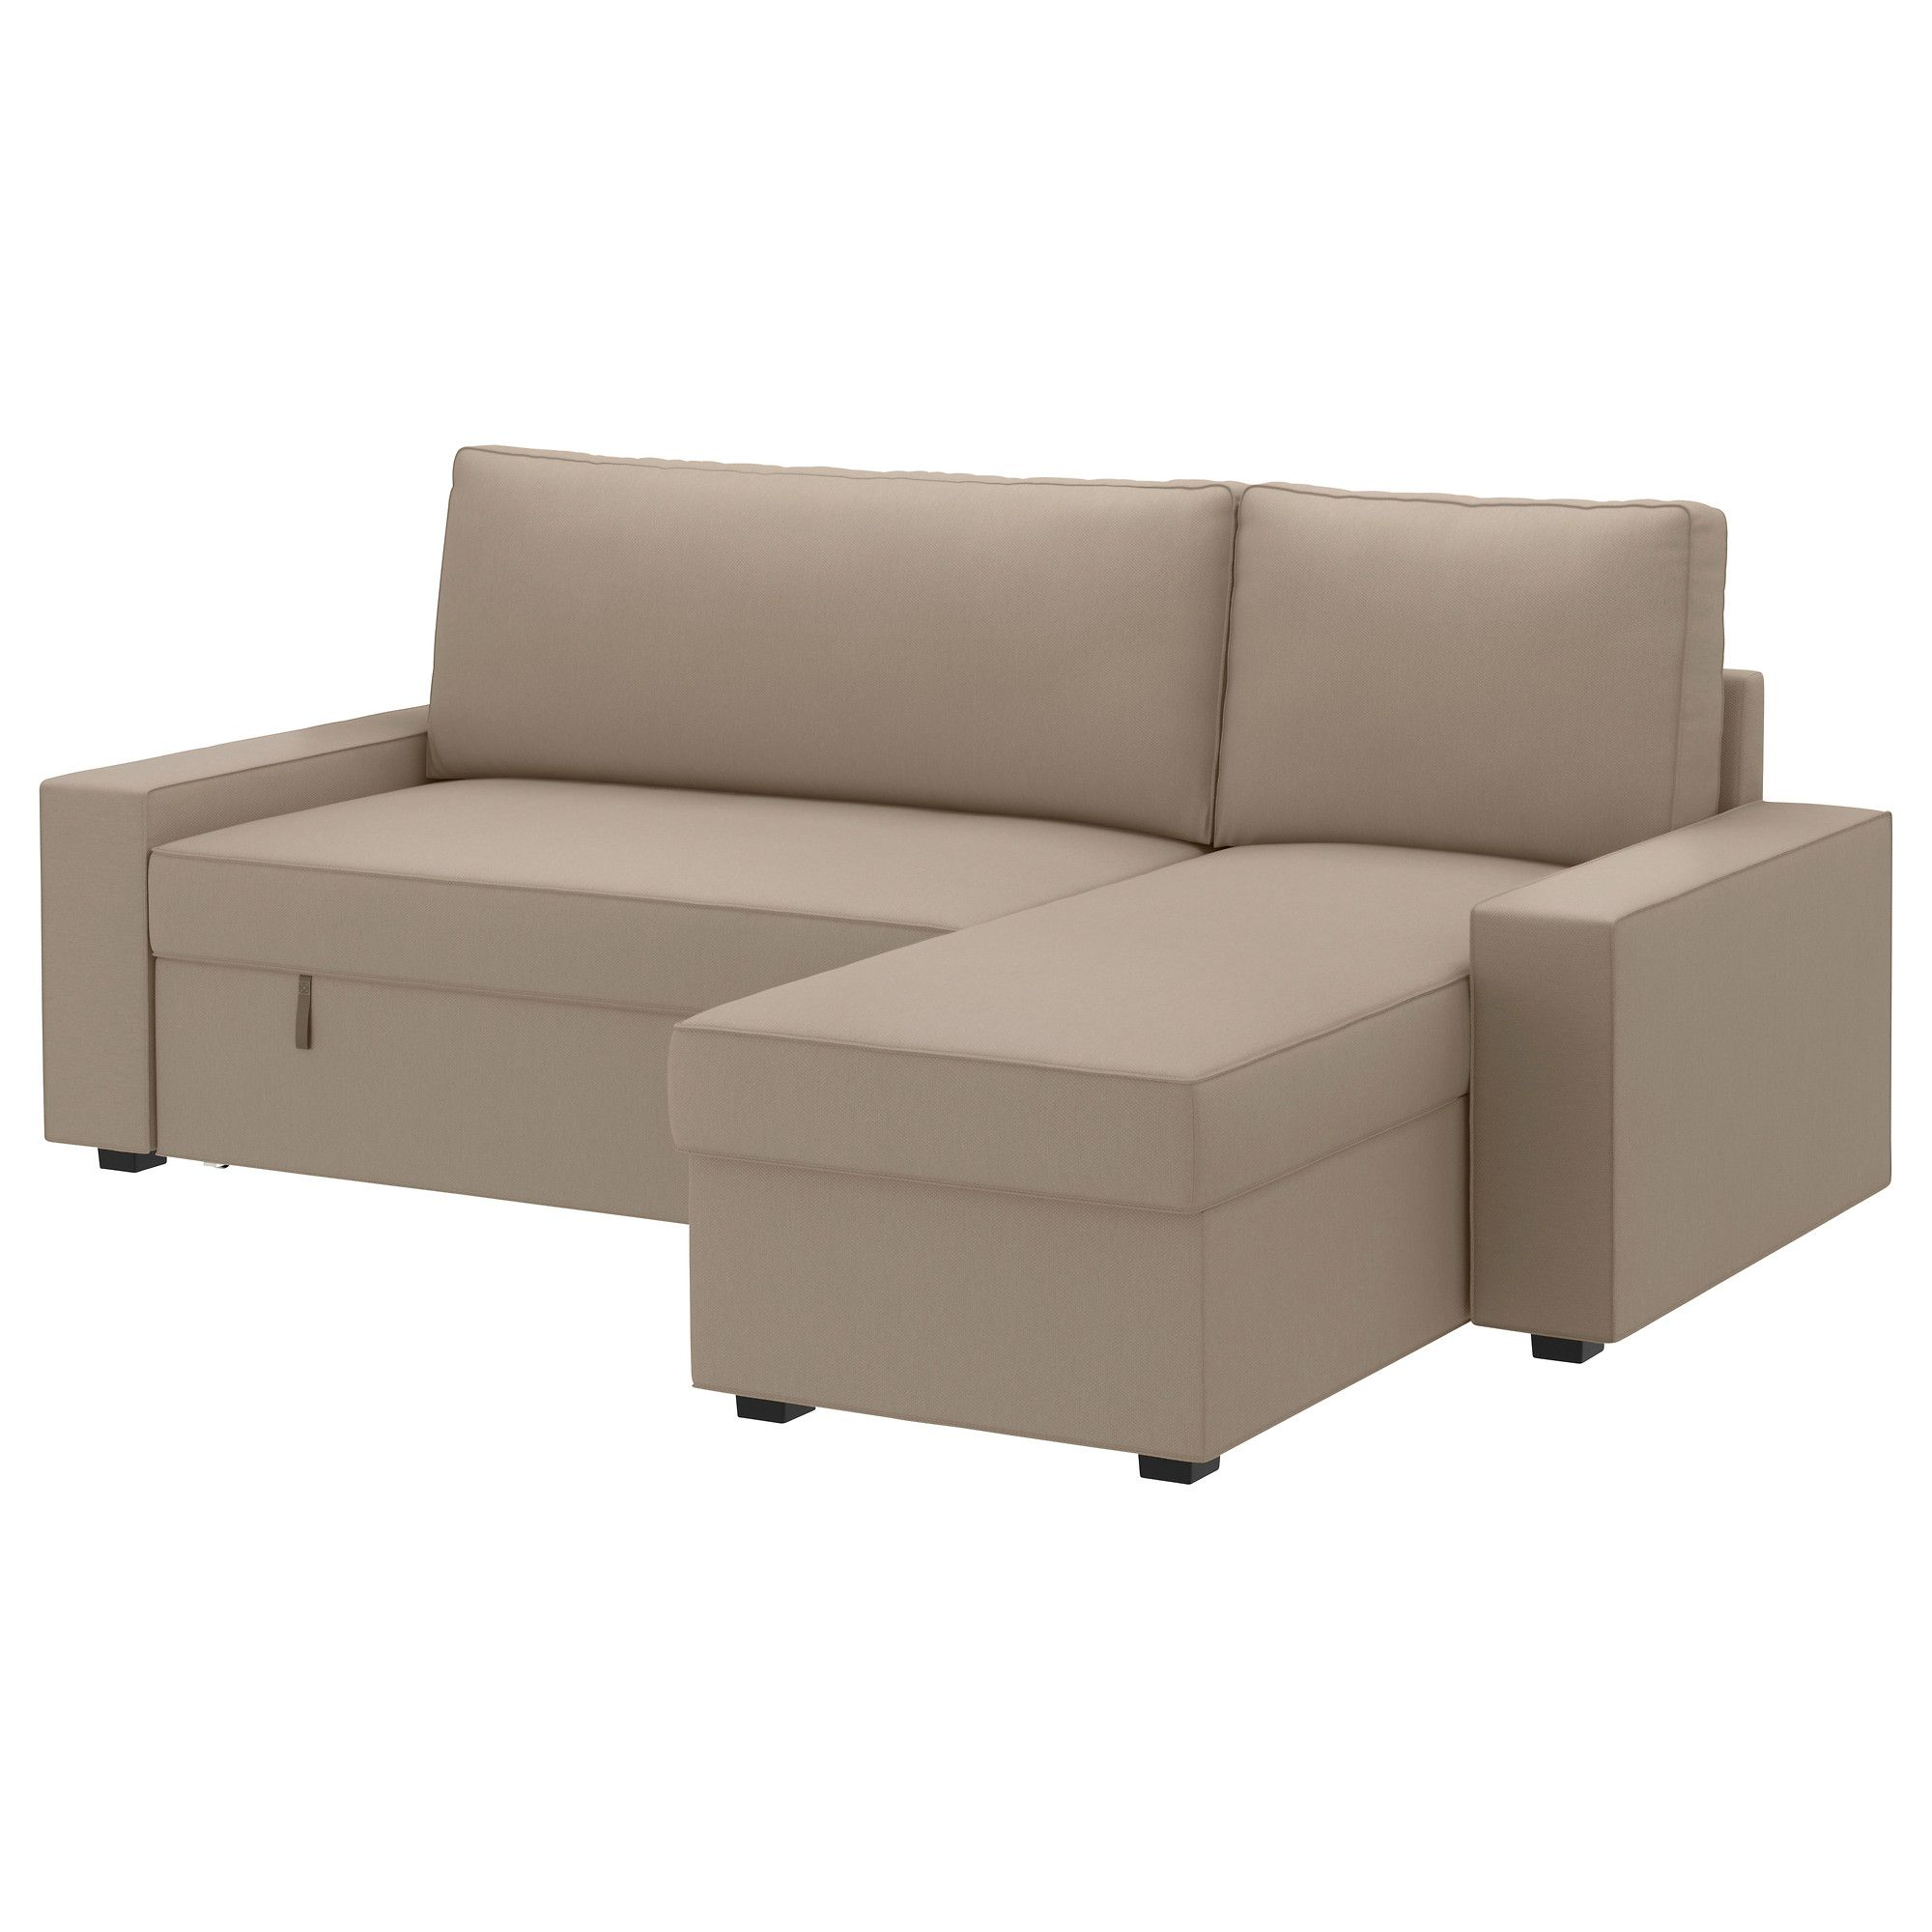 Us Furniture And Home Furnishings Sofa Bed With Chaise Ikea Sofa Small Chaise Sofa